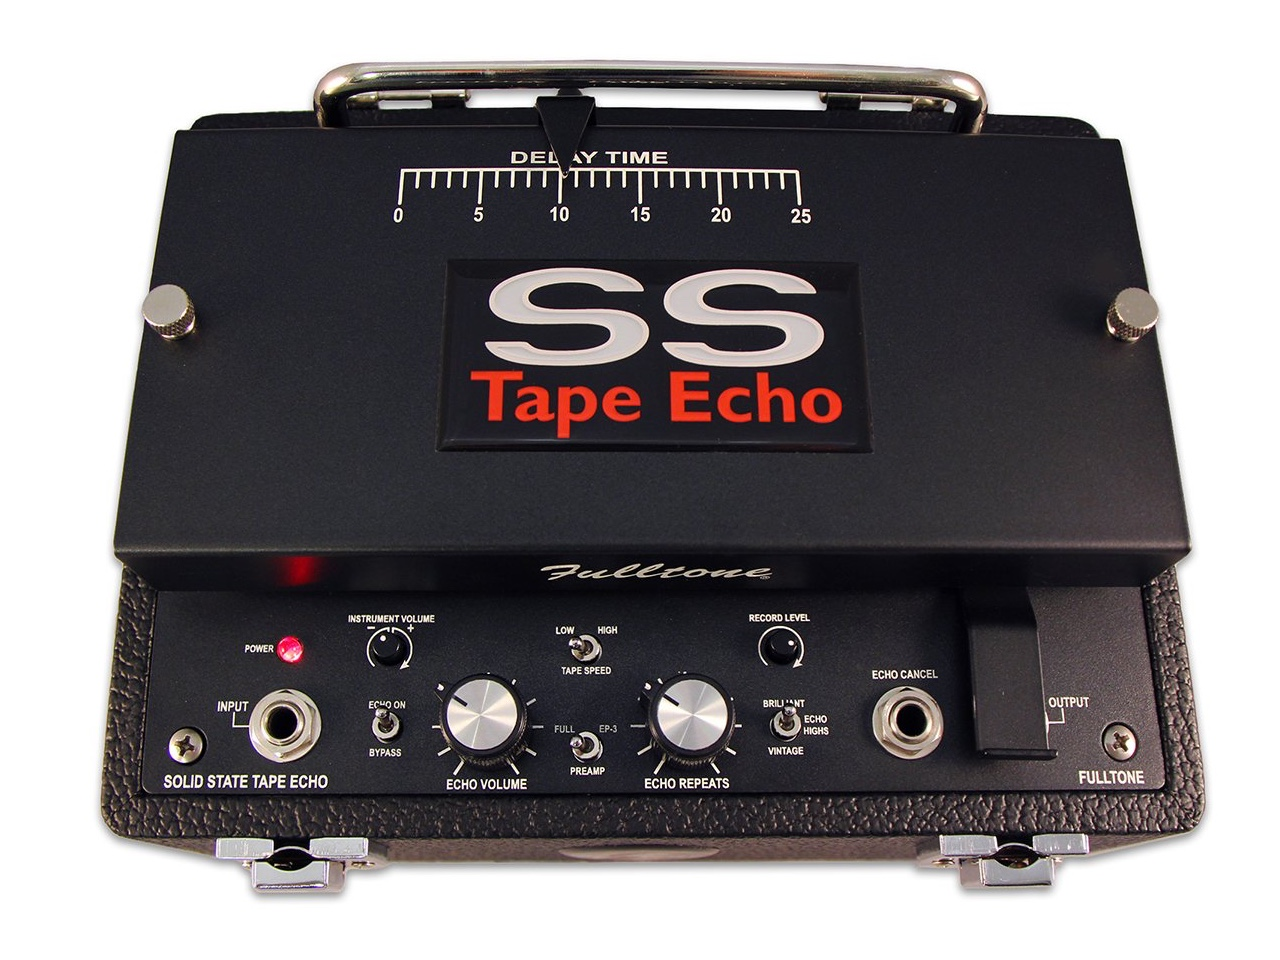 fulltone musical products inc pedals solid state tape echo. Black Bedroom Furniture Sets. Home Design Ideas